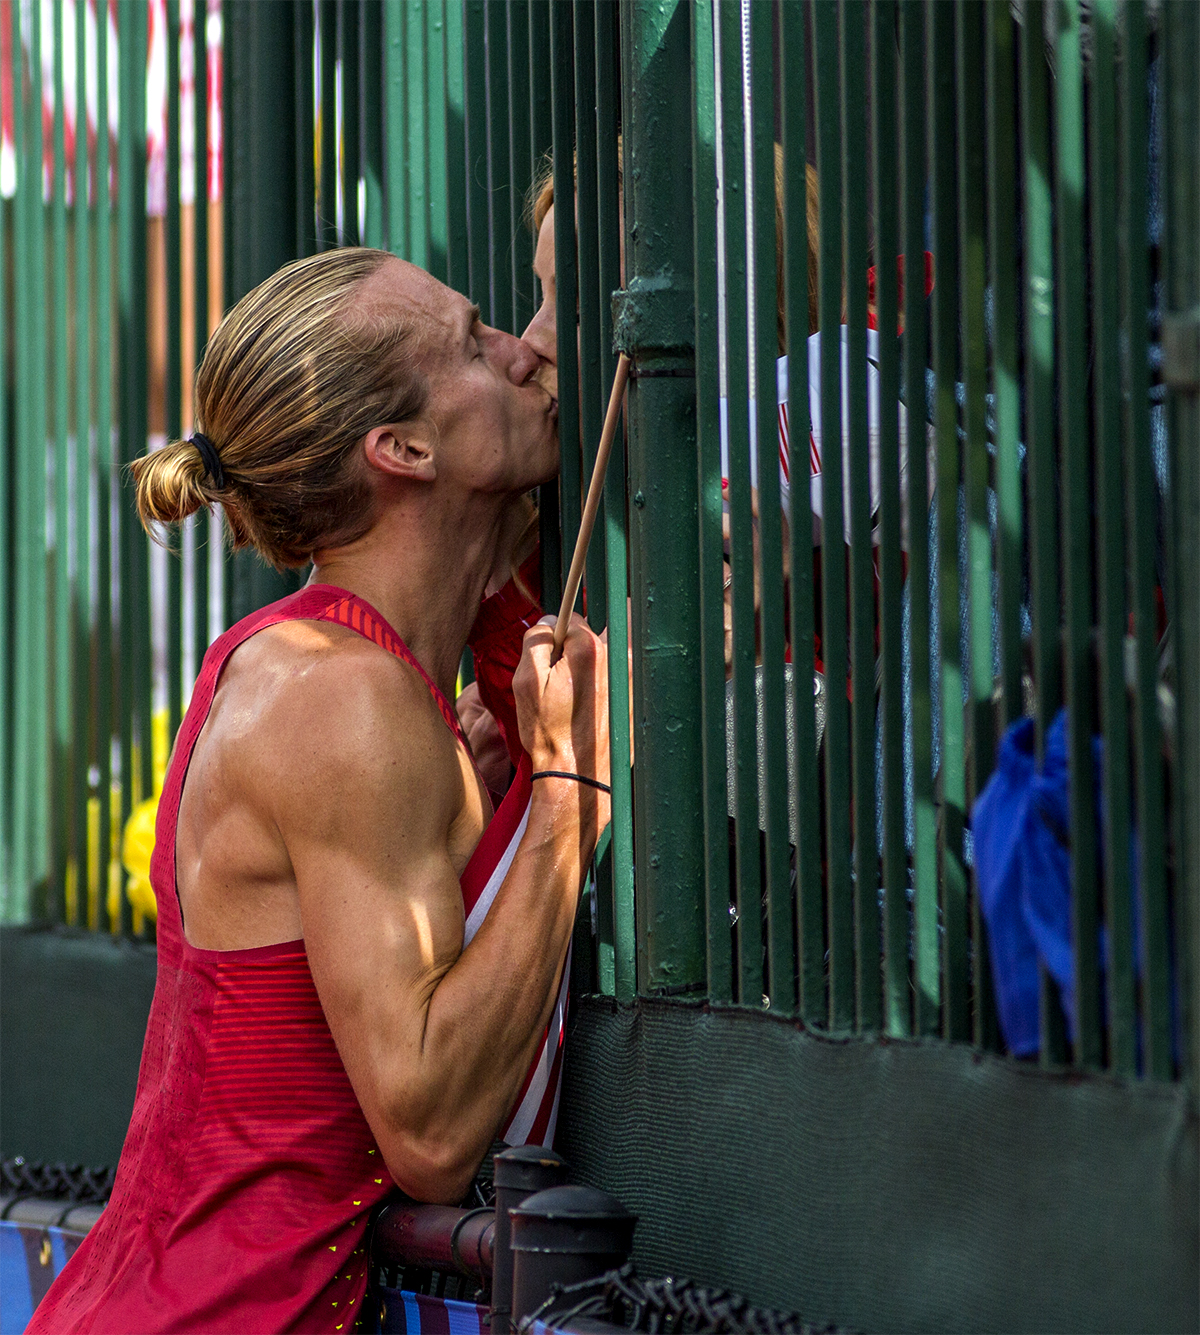 Nike Bowerman TC's Evan Jager kisses his girlfriend after winning the 3,000 meter steeplechase at the Olympic Trials with a time of 8:22.48. By winning Jager qualified for the Olympic Games in Rio De Janeiro.